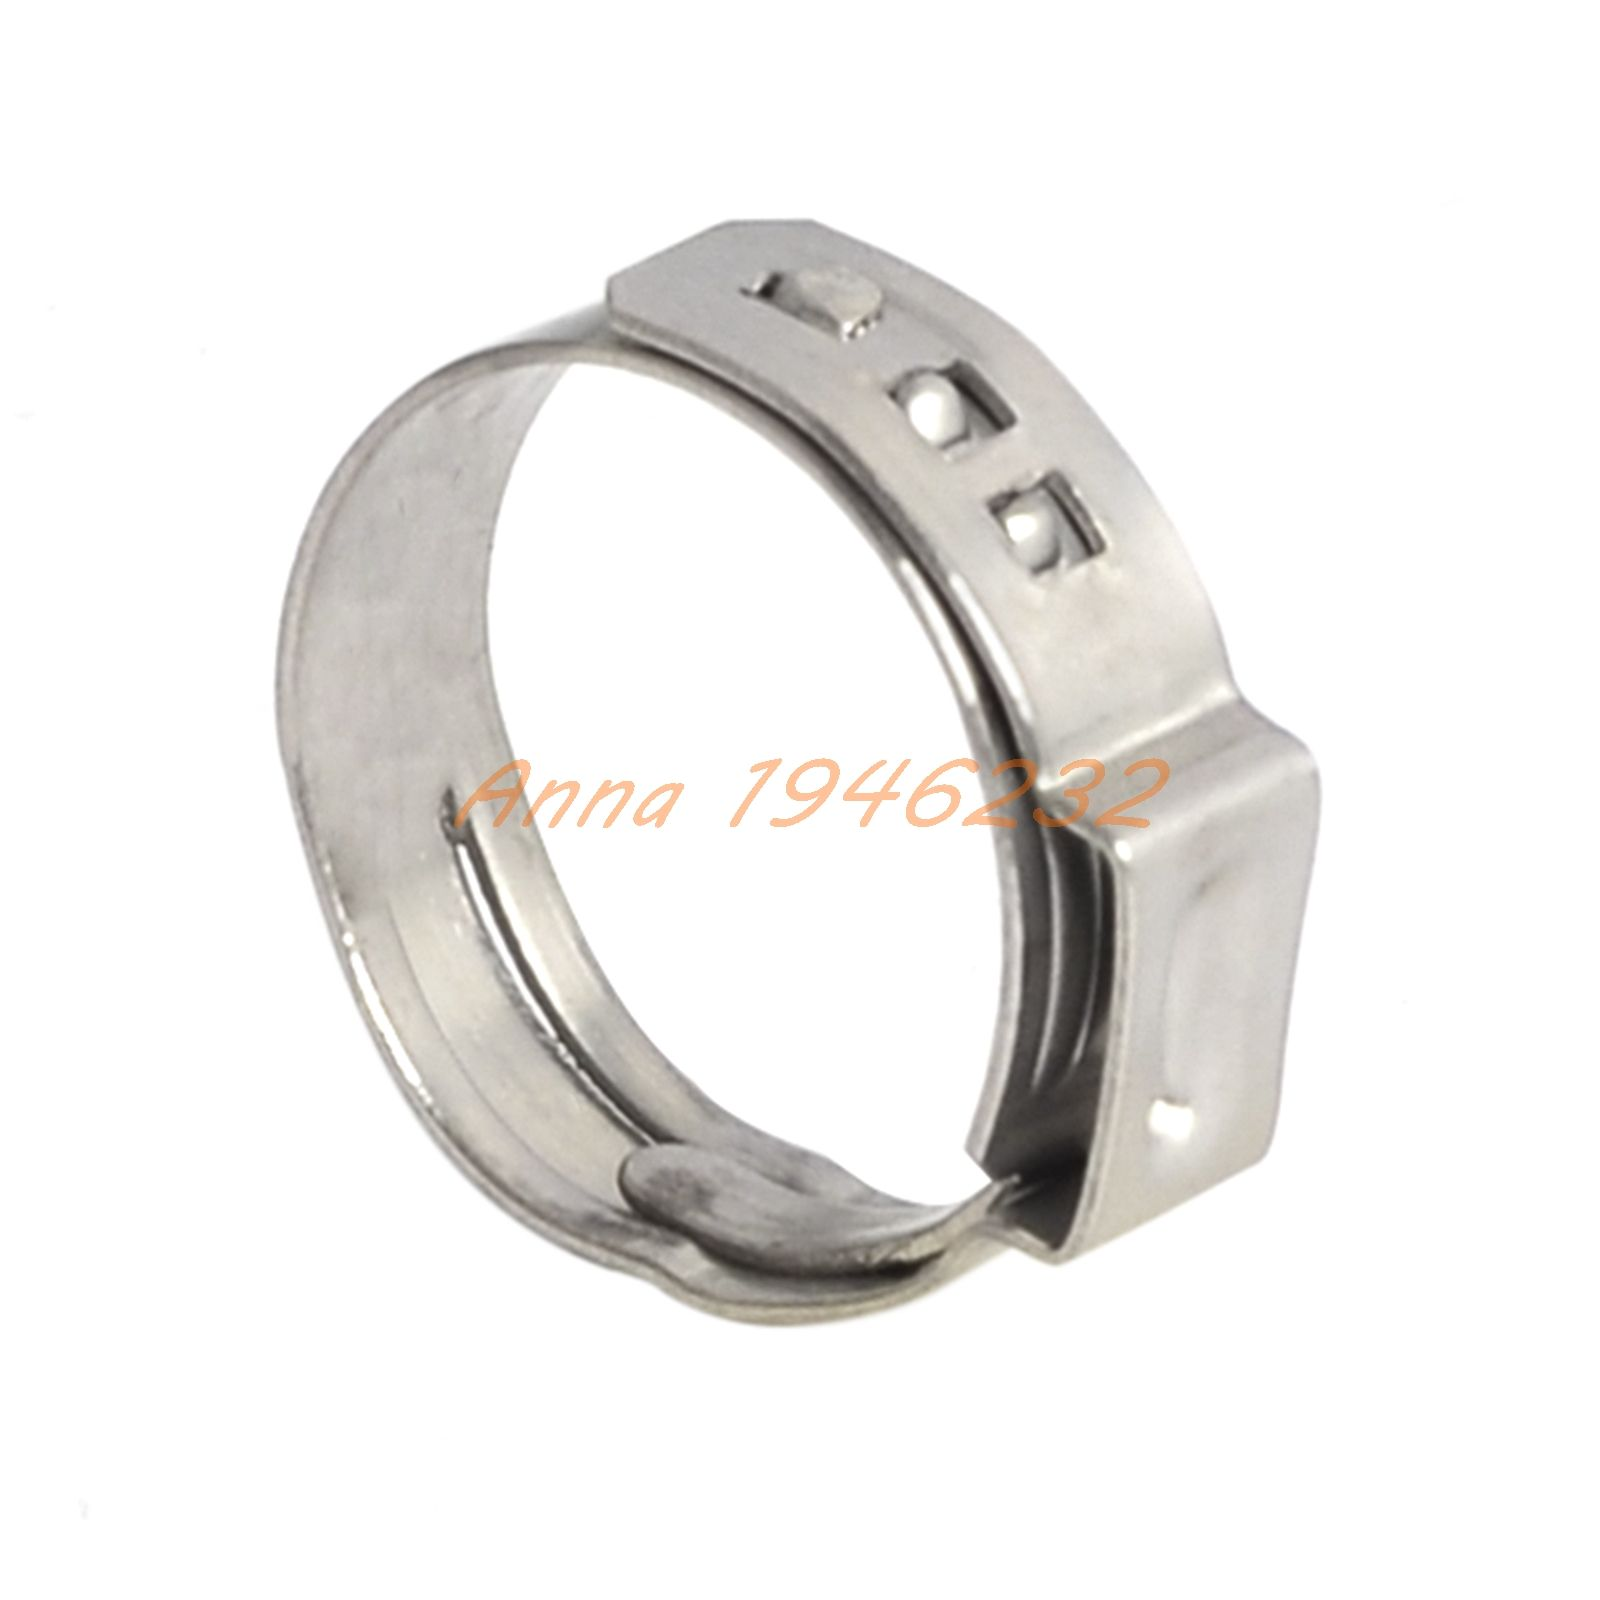 "Stainless Steel Pipe Hose Clamp Cinch Ring Crimp Pinch Fitting For 5/8"" PEX Tubing"